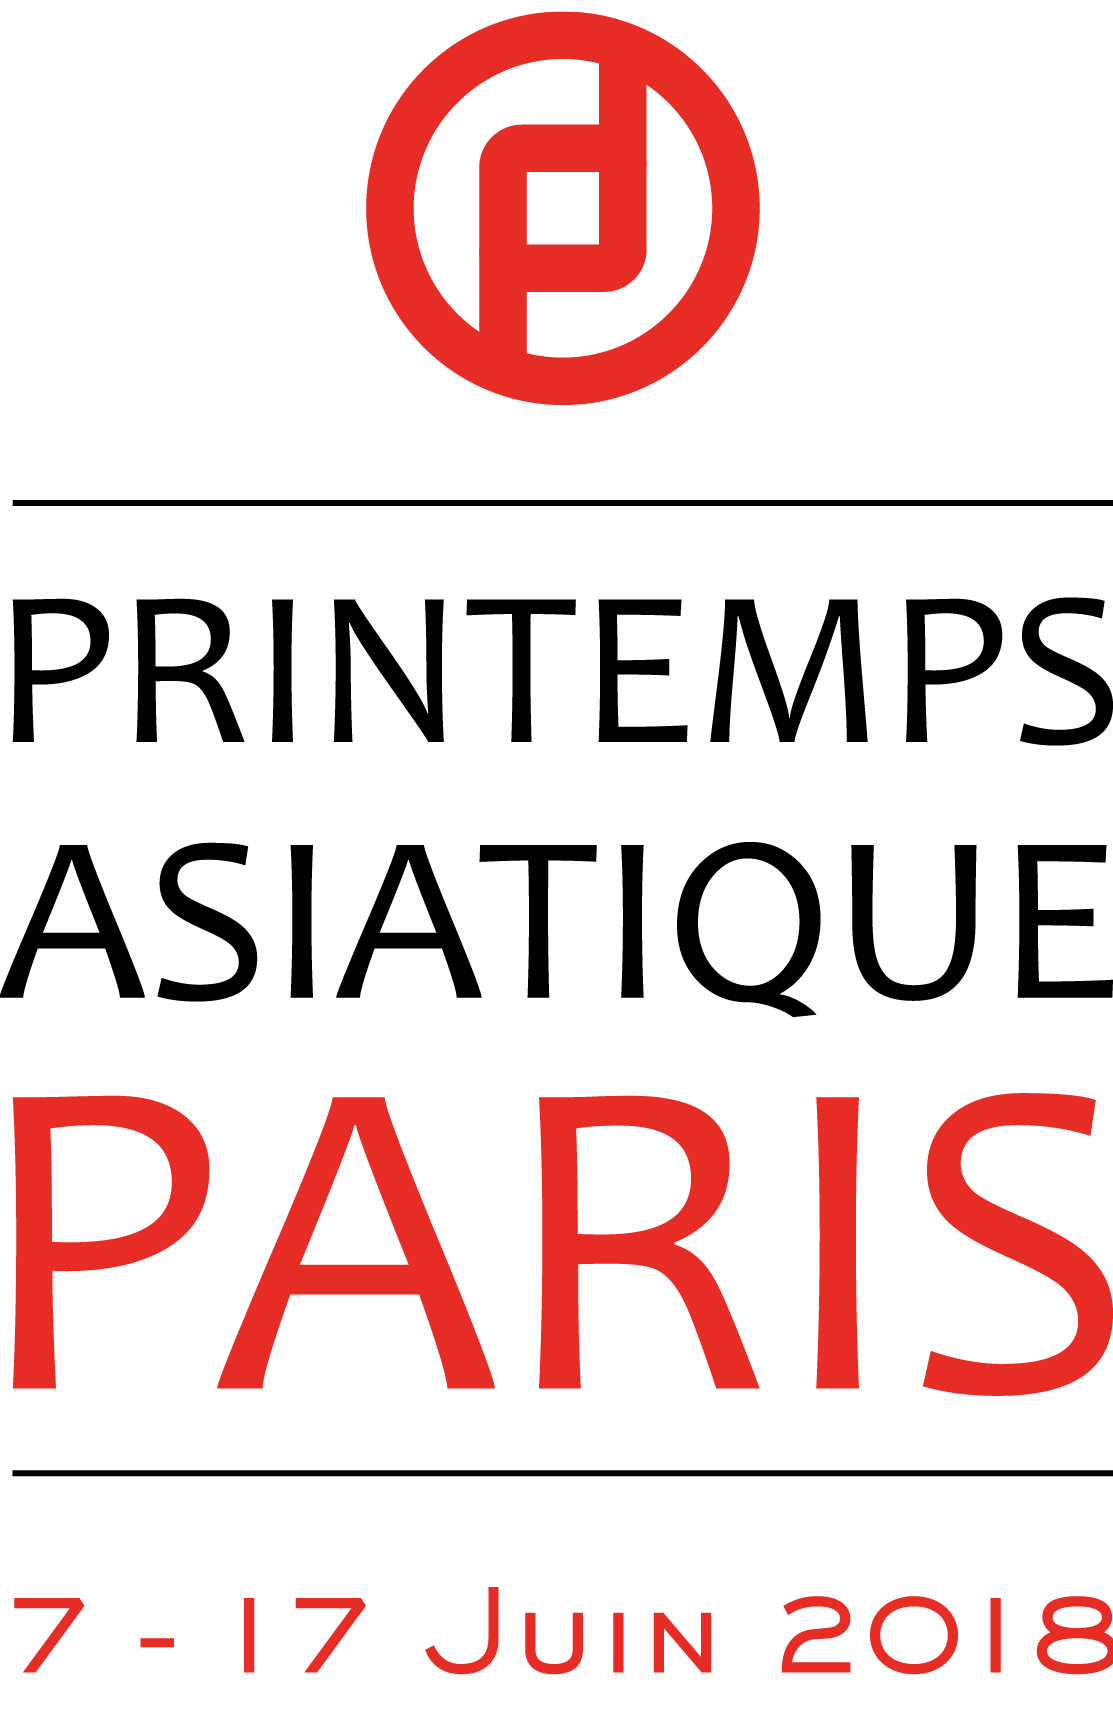 //www.galeriehioco.com/wp-content/uploads/2018/04/LOGO-Printemps-Asiatique-Paris-01.png